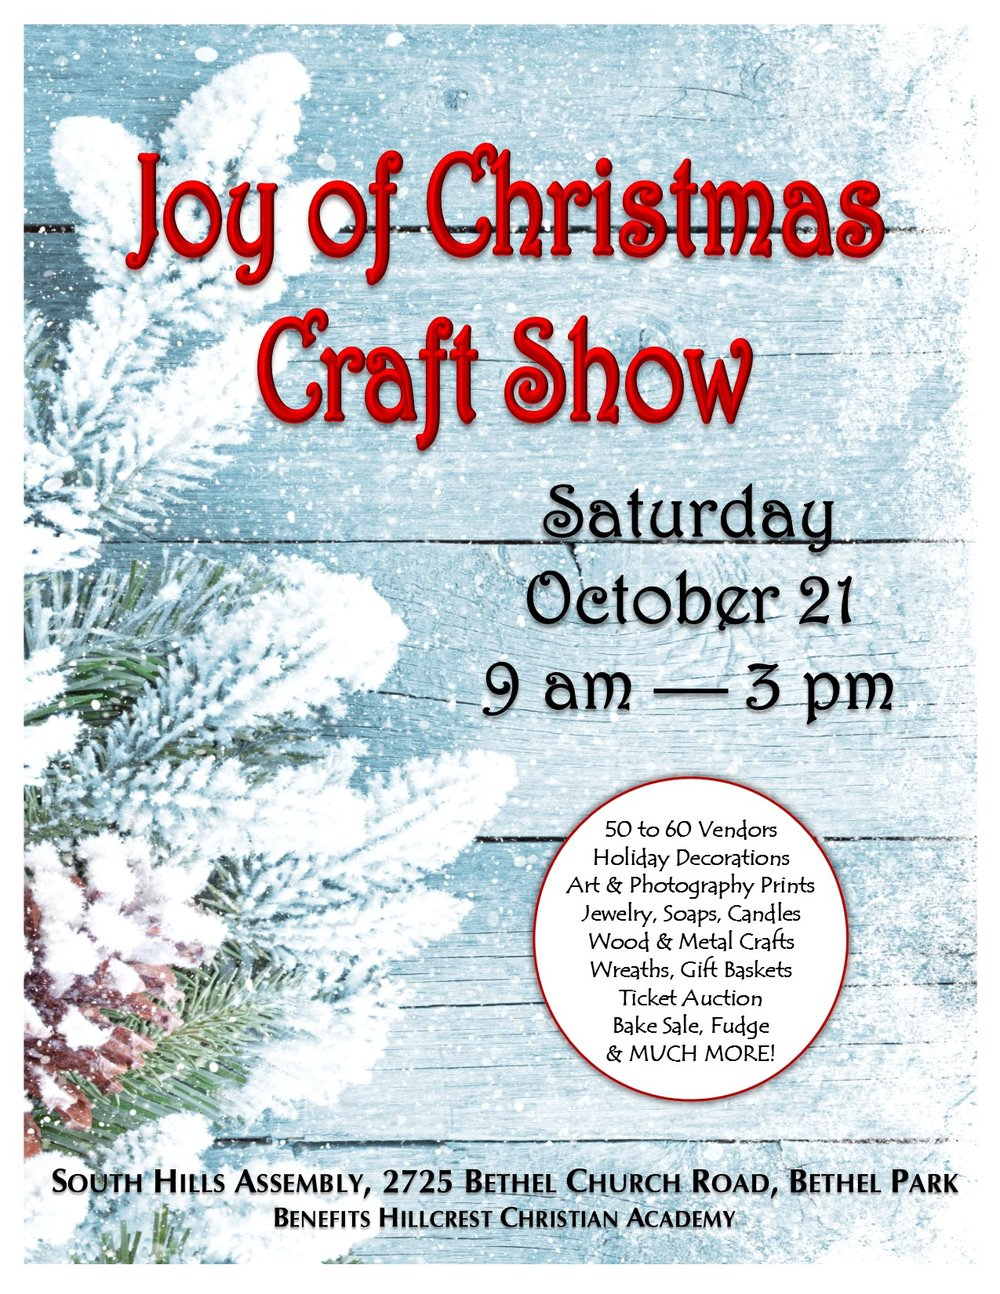 Joy of Christmas Craft Show 2017.jpg